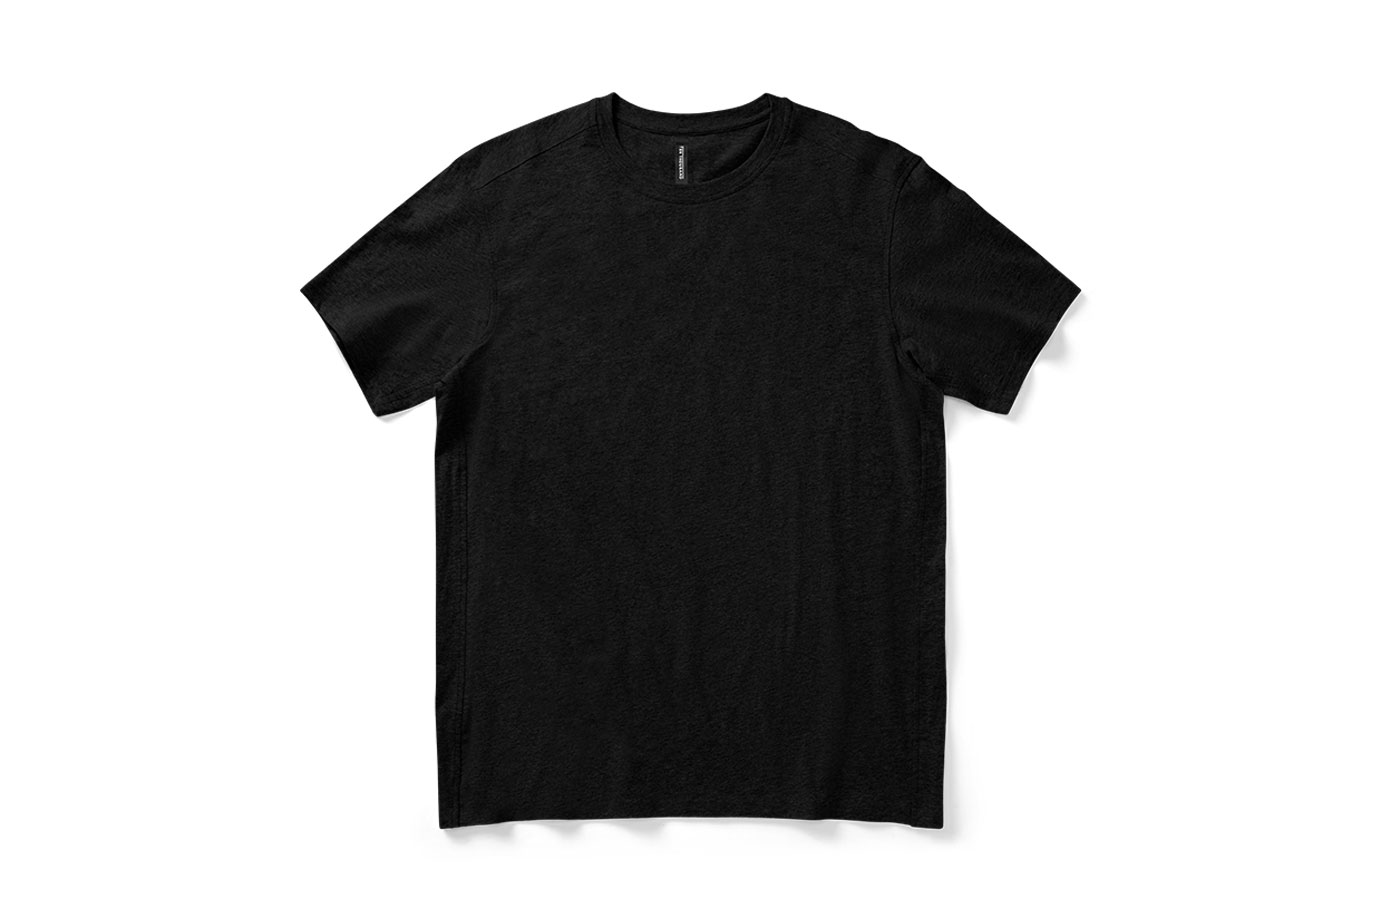 Ten Thousand Essential Shirt